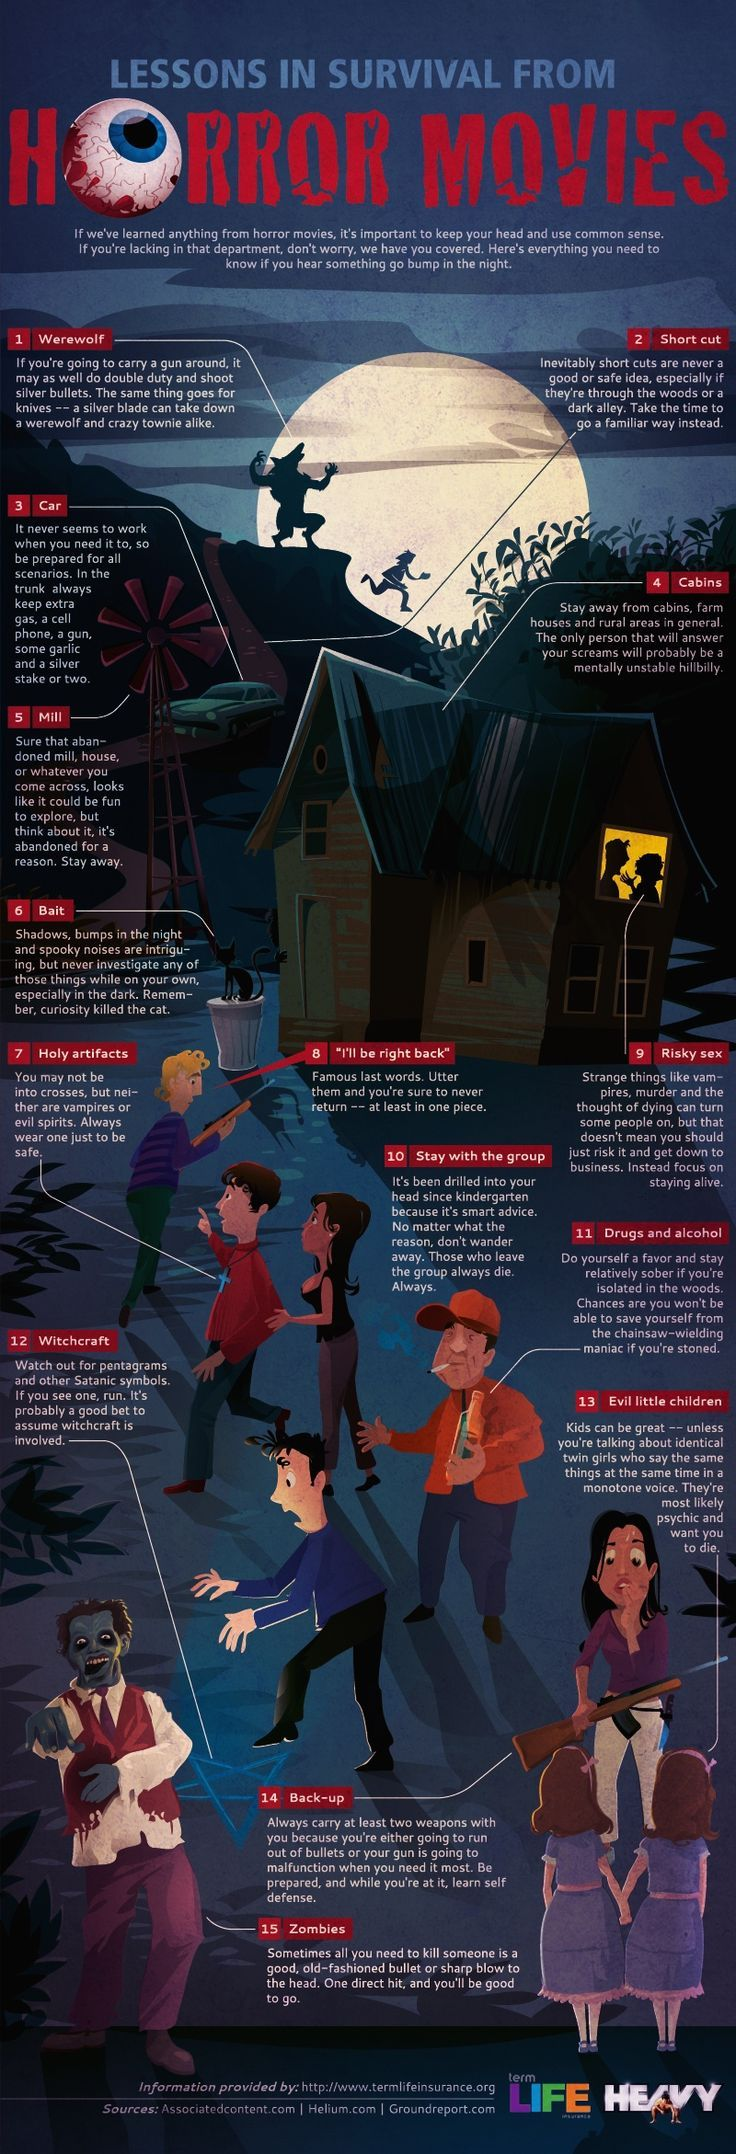 Survival Lessons - from Horror Movies